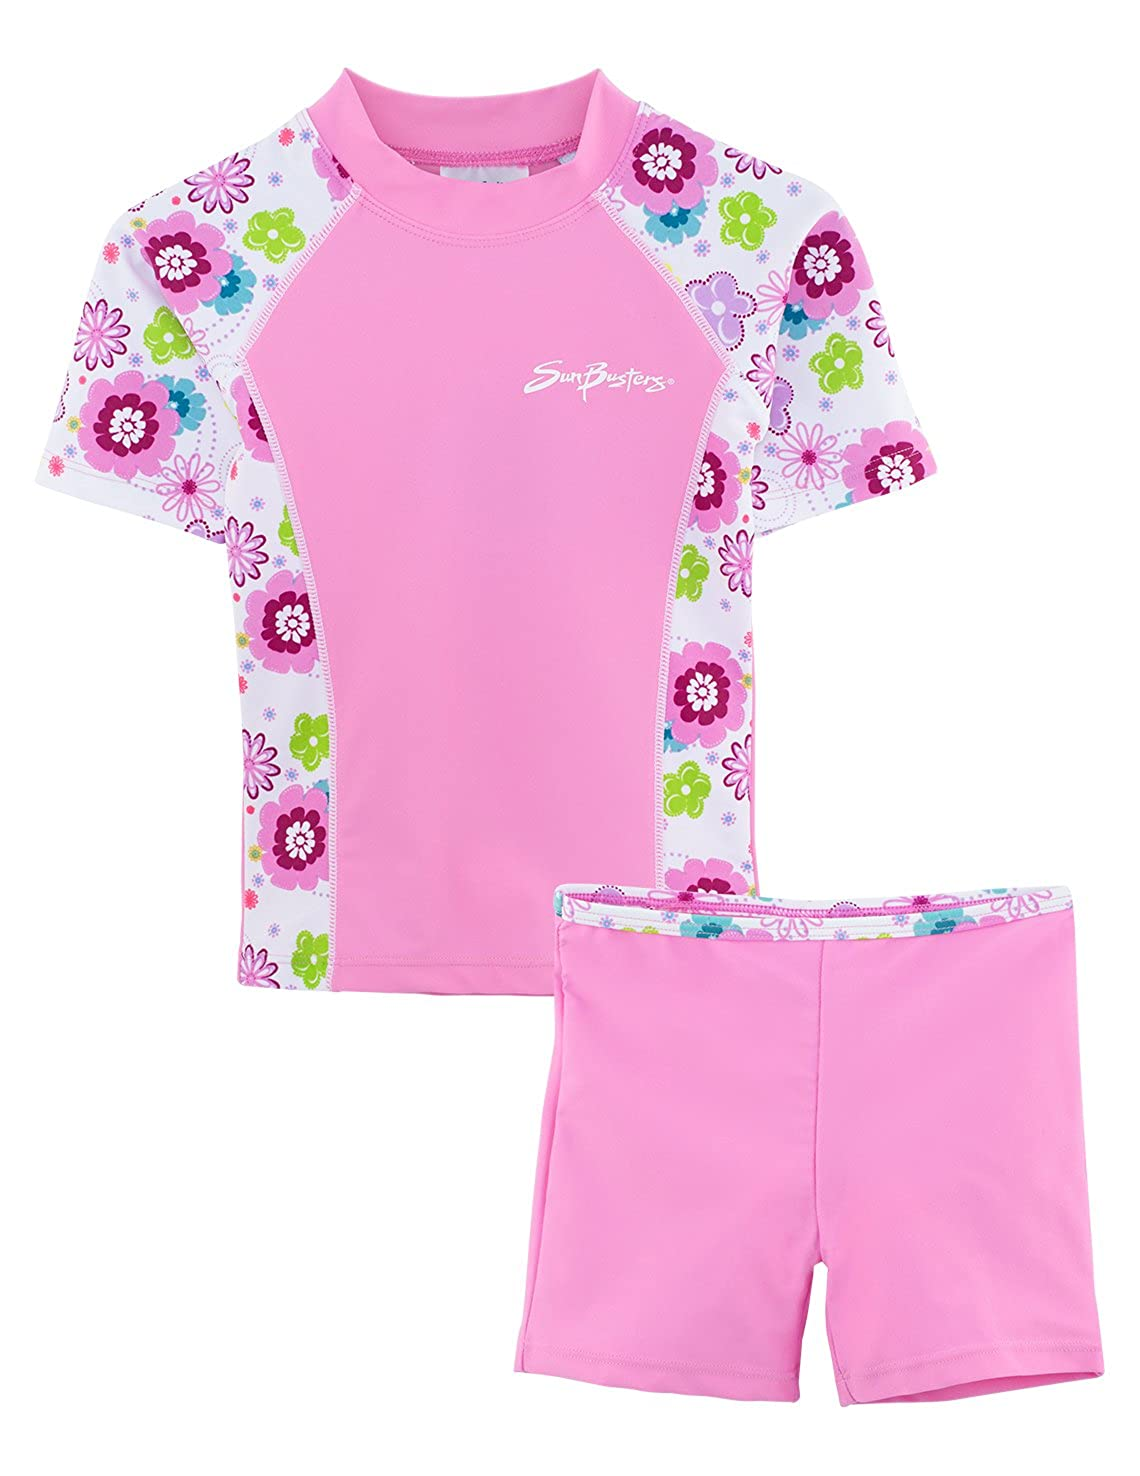 SunBusters Girls Fitted Swim Set 12 mos-12 yrs, UPF 50+ Sun Protection Plangea